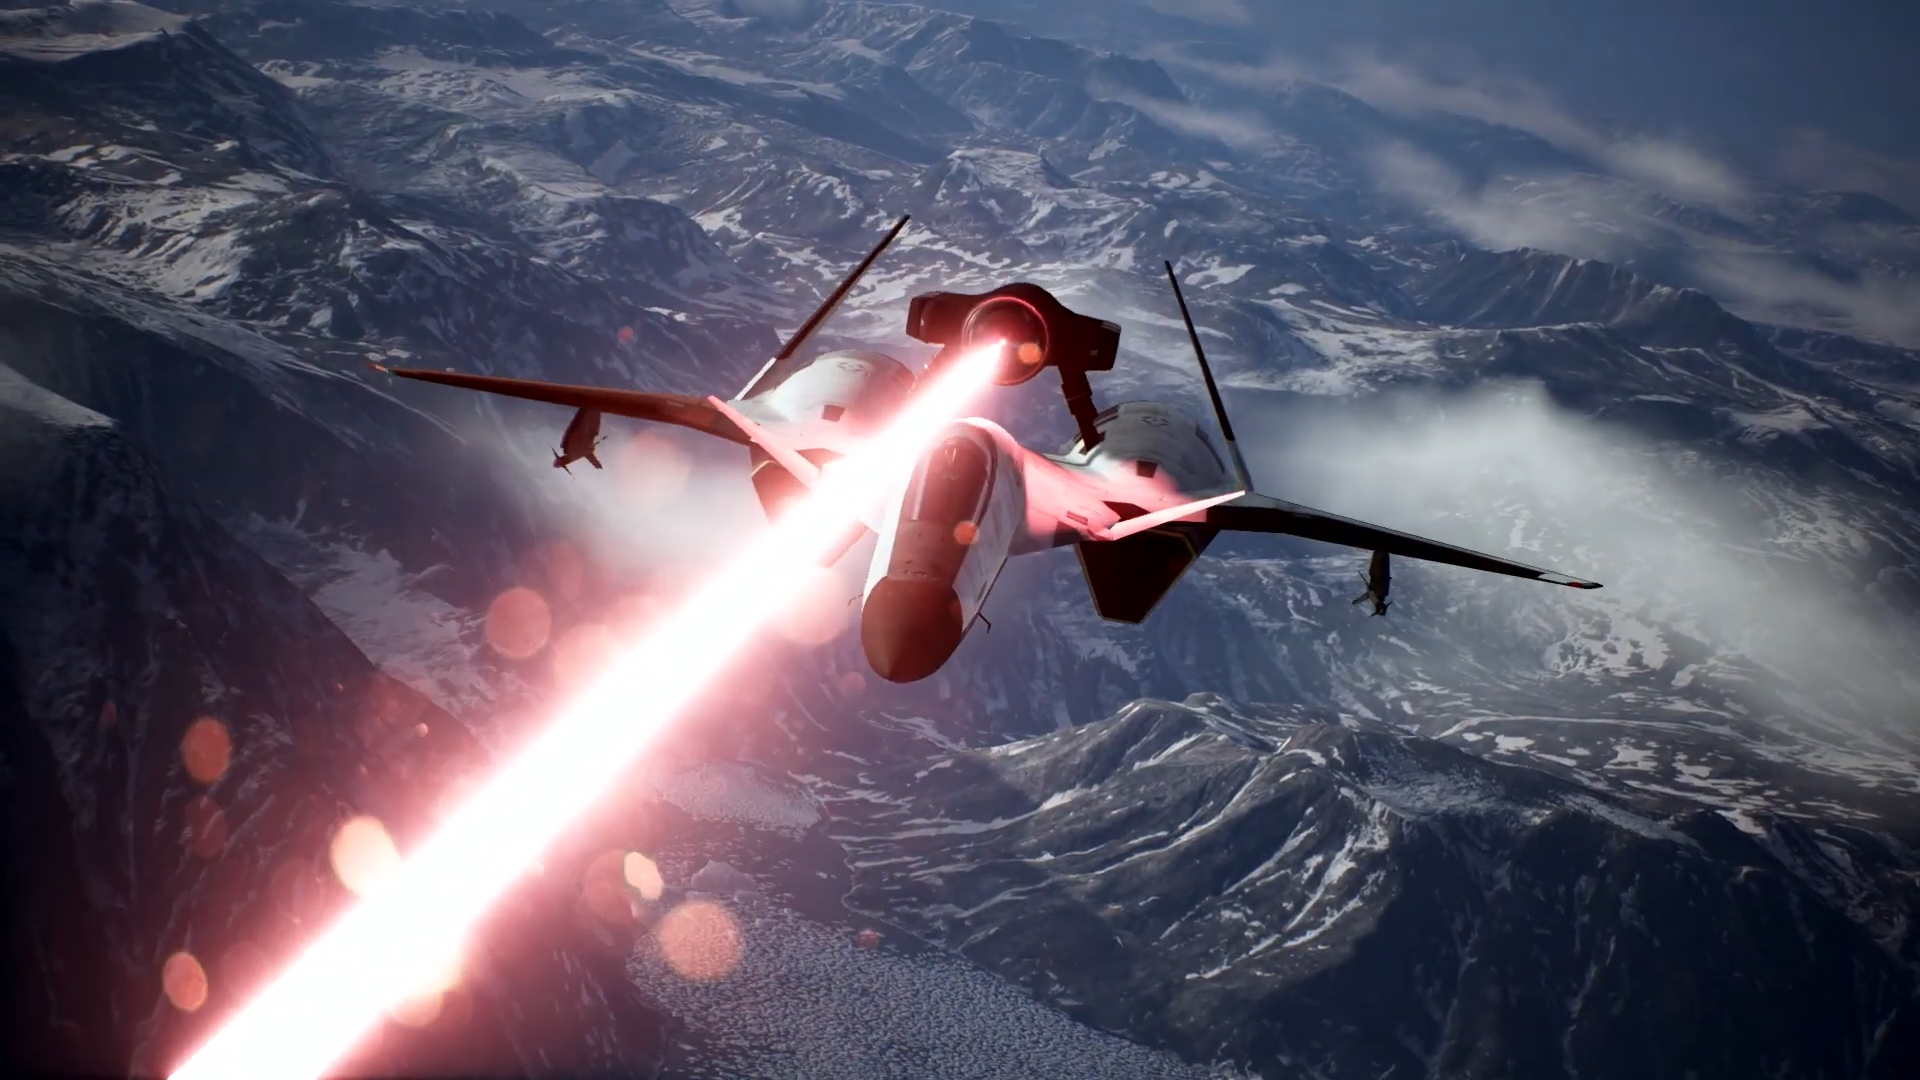 Ace Combat 7 Additional Aircraft DLC Detailed With New